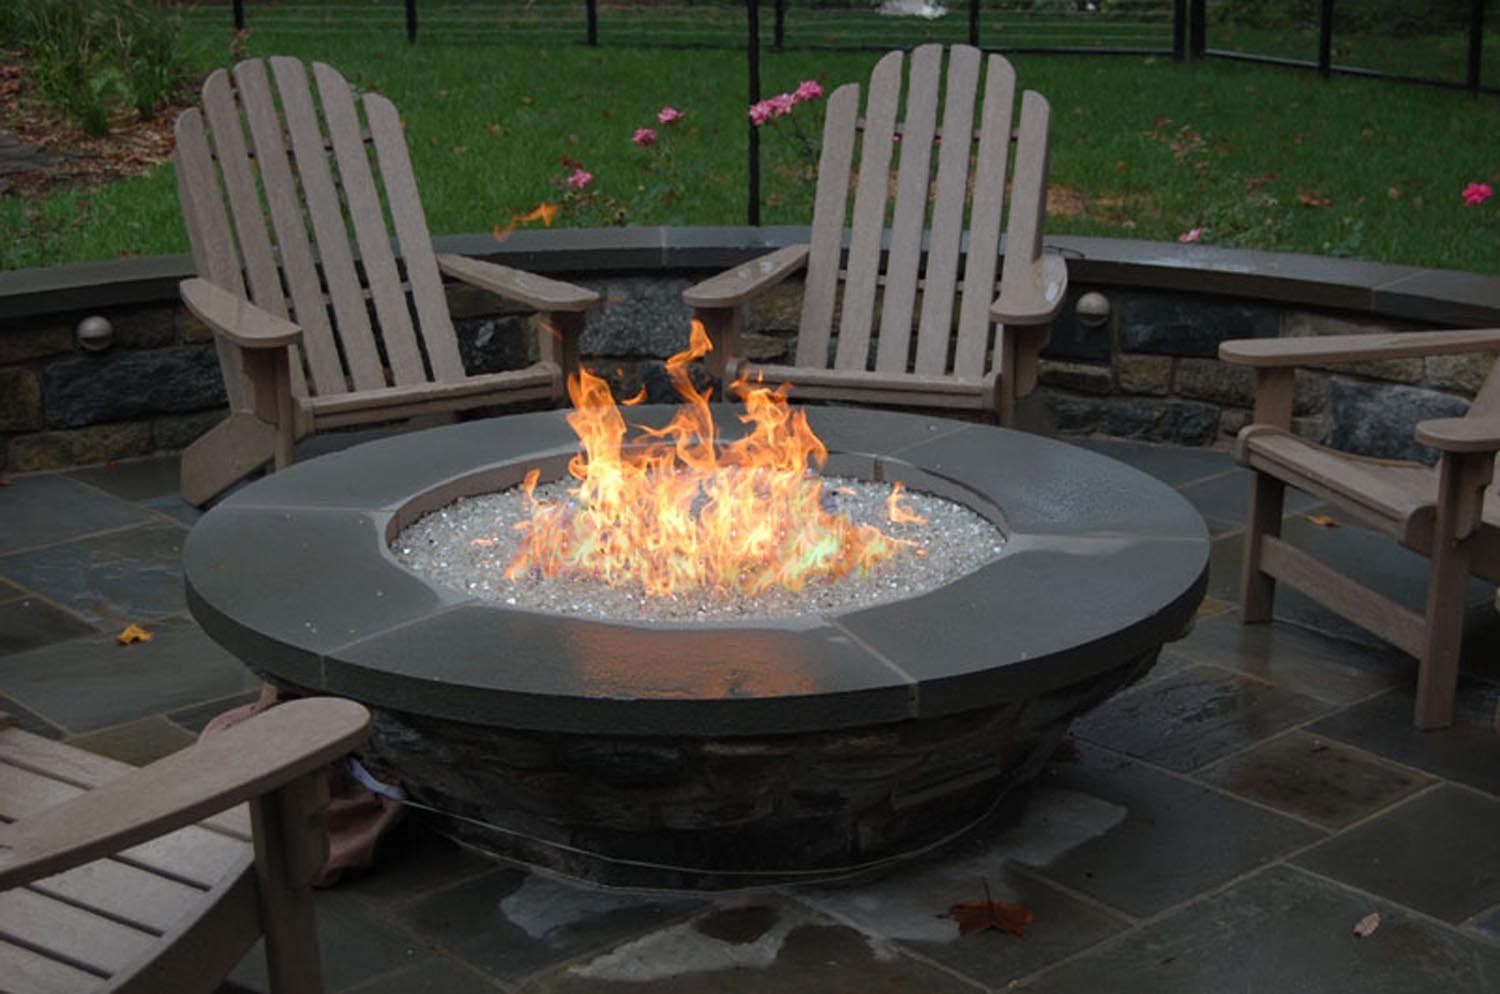 Amazon.com: HPC Penta Natural Gas Fire Pit Burner, 24 Inch: Sports U0026  Outdoors